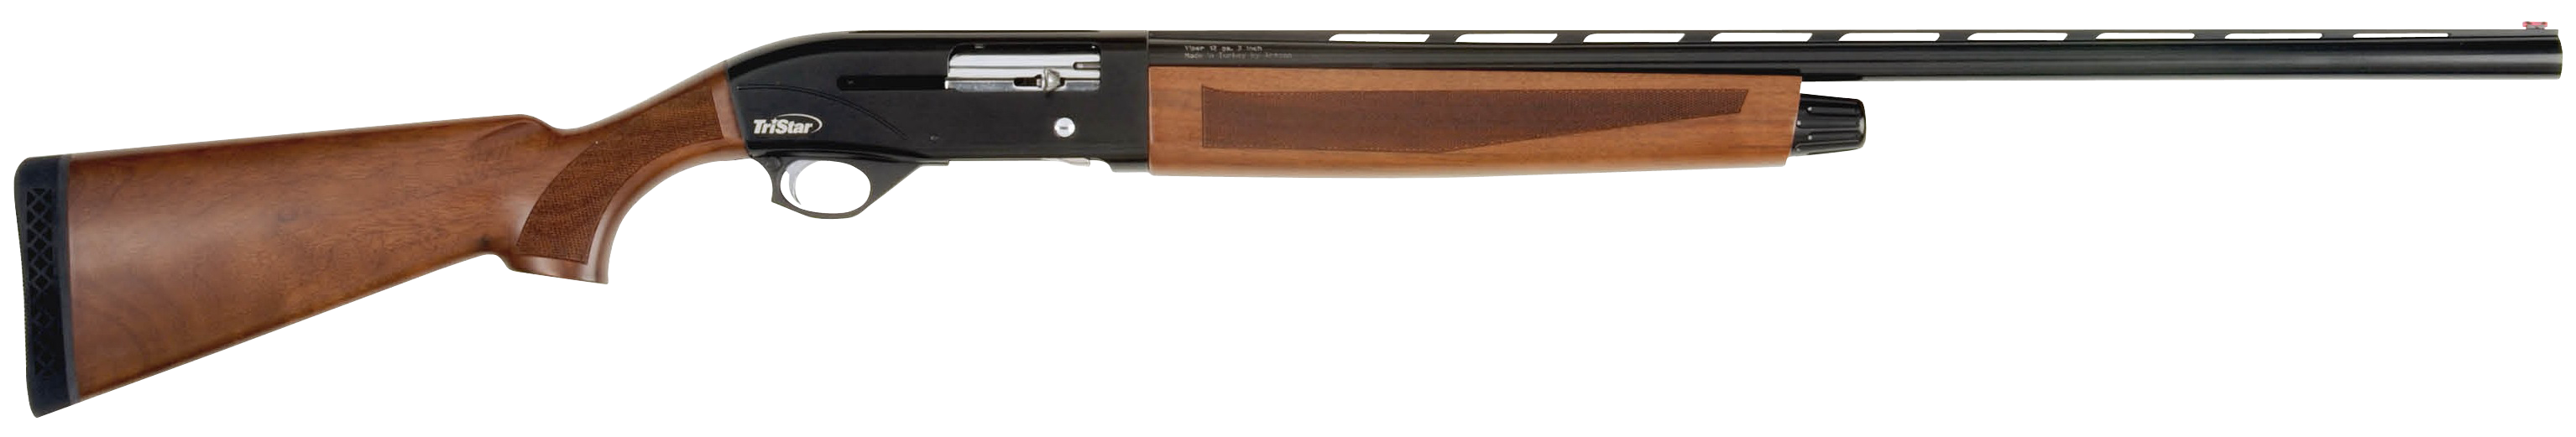 TriStar Viper G2 Wood Semi-Auto Shotgun 3'' 410 Bore 26'' Black - Turkish Walnut